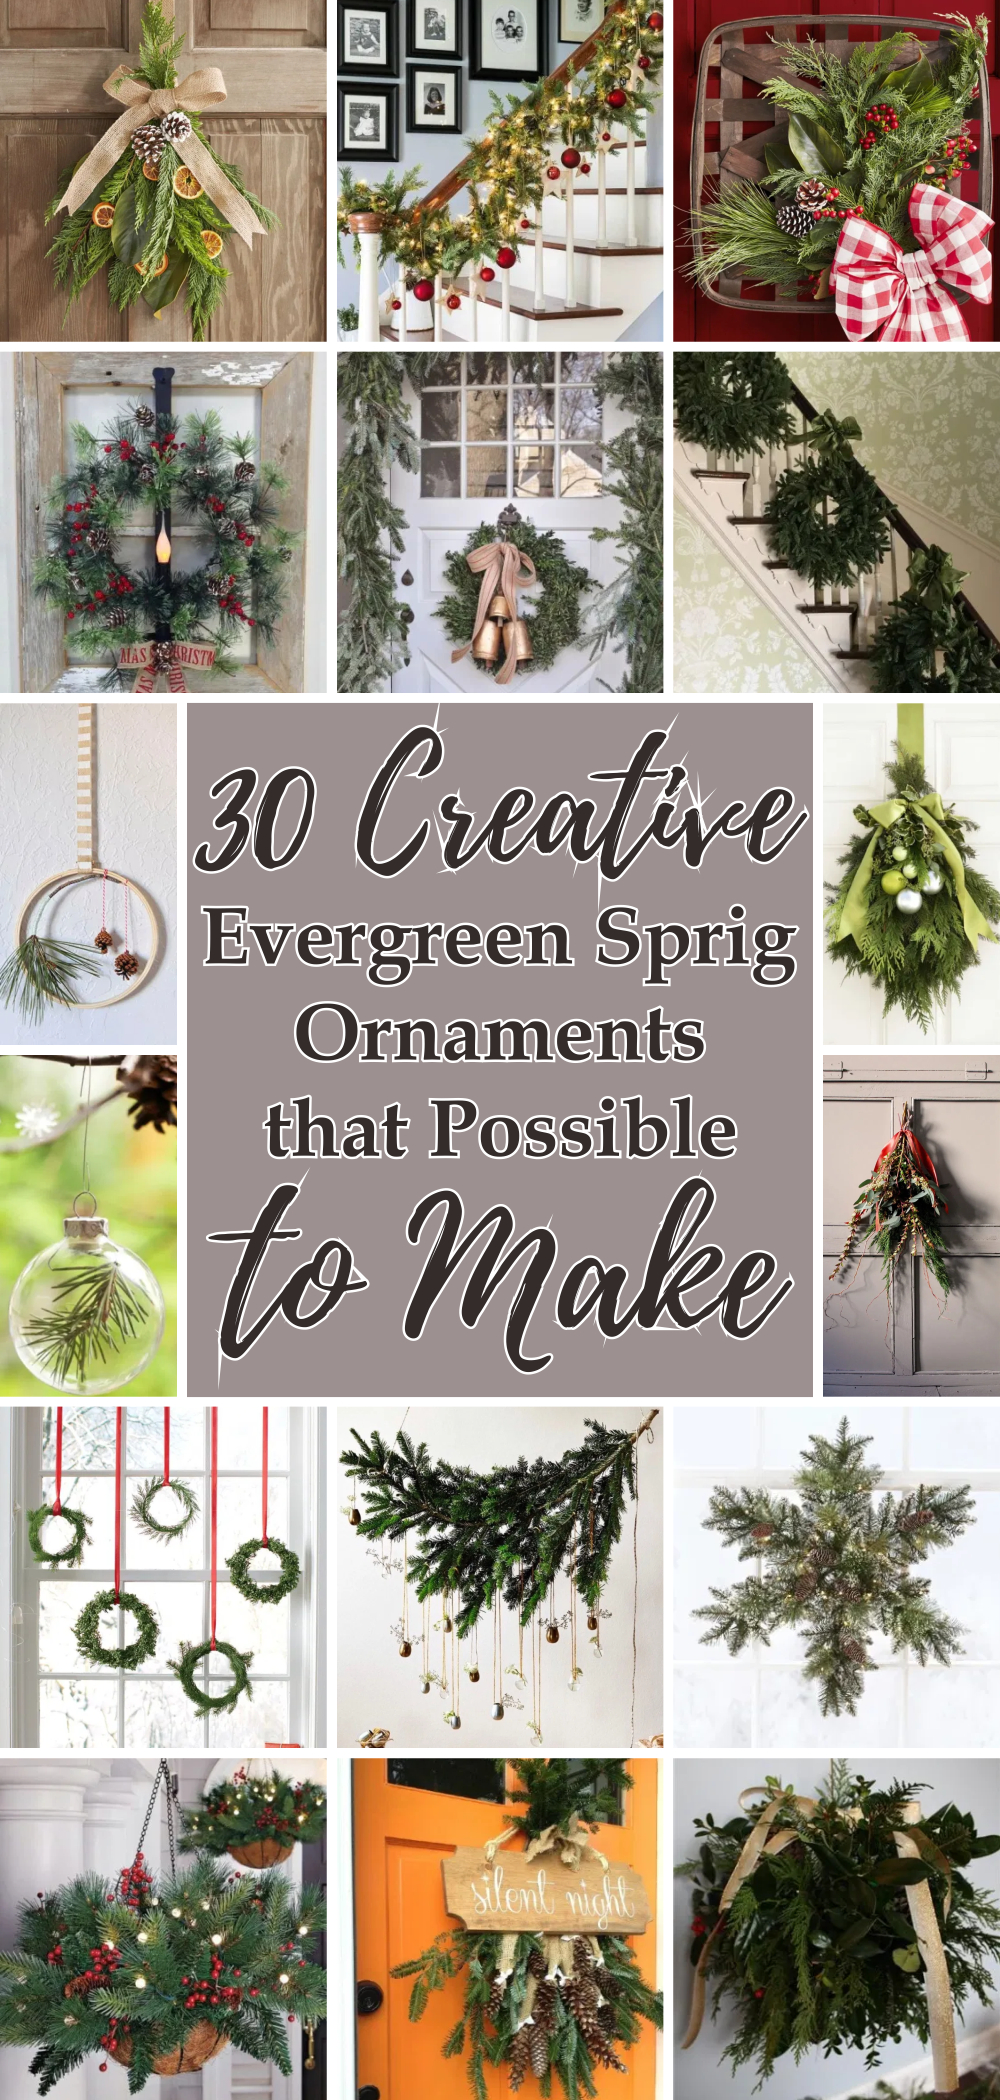 30 creative evergreen sprig ornaments that possible to make 1